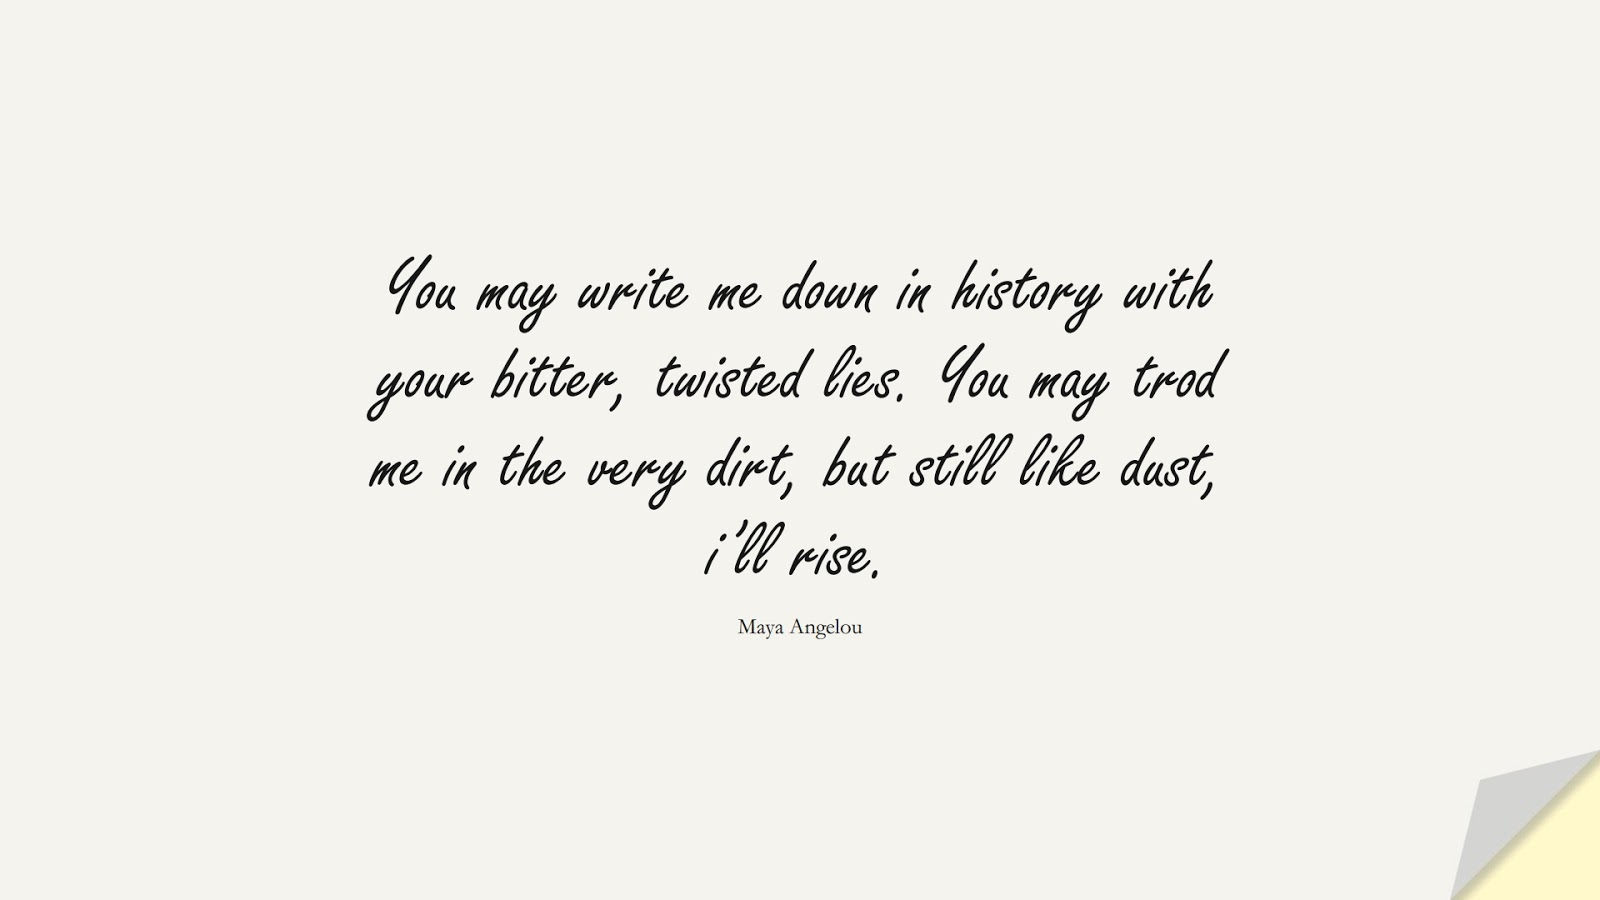 You may write me down in history with your bitter, twisted lies. You may trod me in the very dirt, but still like dust, i'll rise. (Maya Angelou);  #MayaAngelouQuotes